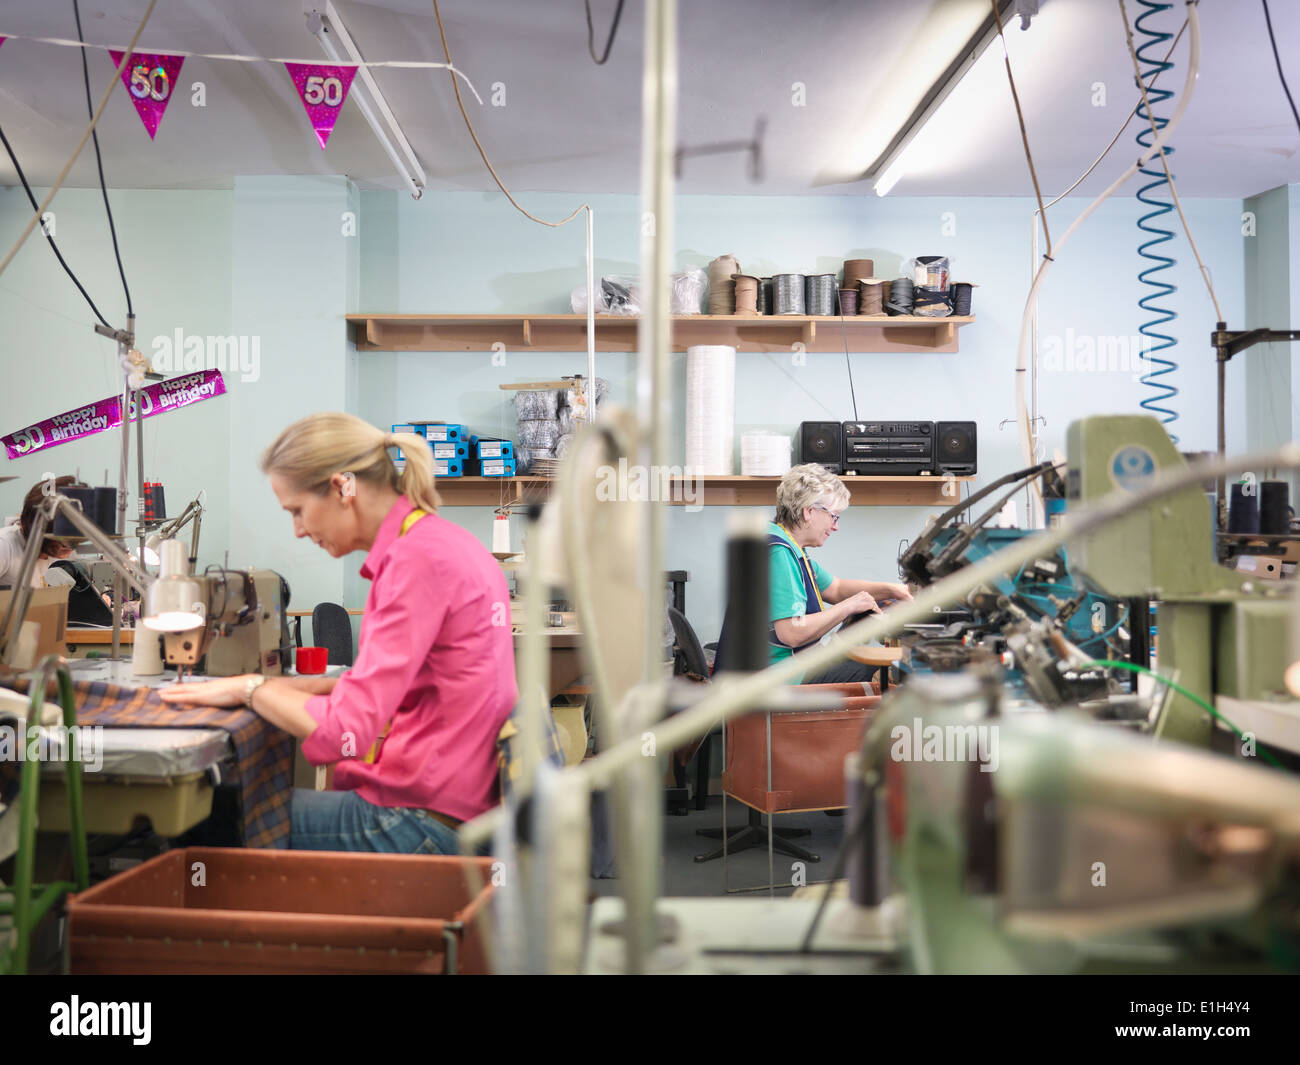 Workers sewing in clothing factory - Stock Image